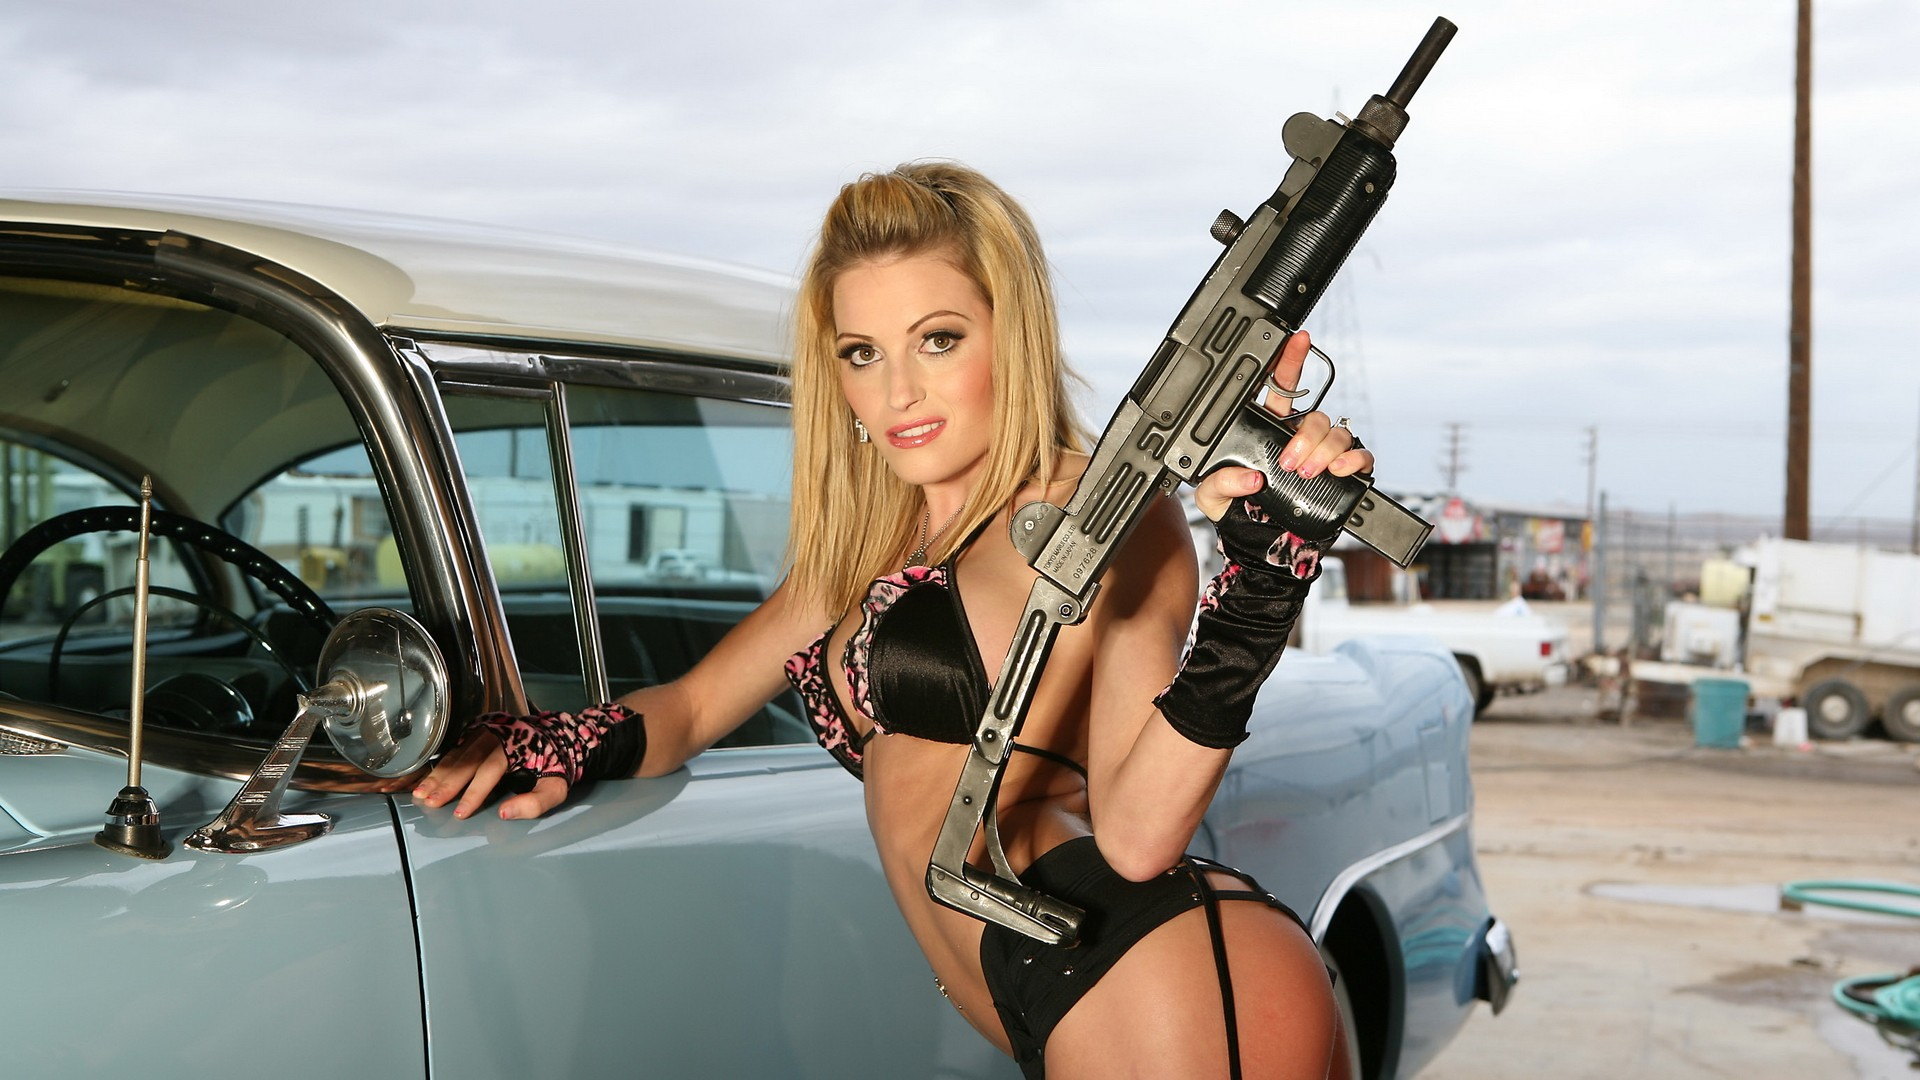 hot girl with gun widescreen full hd wallpaper.jpg